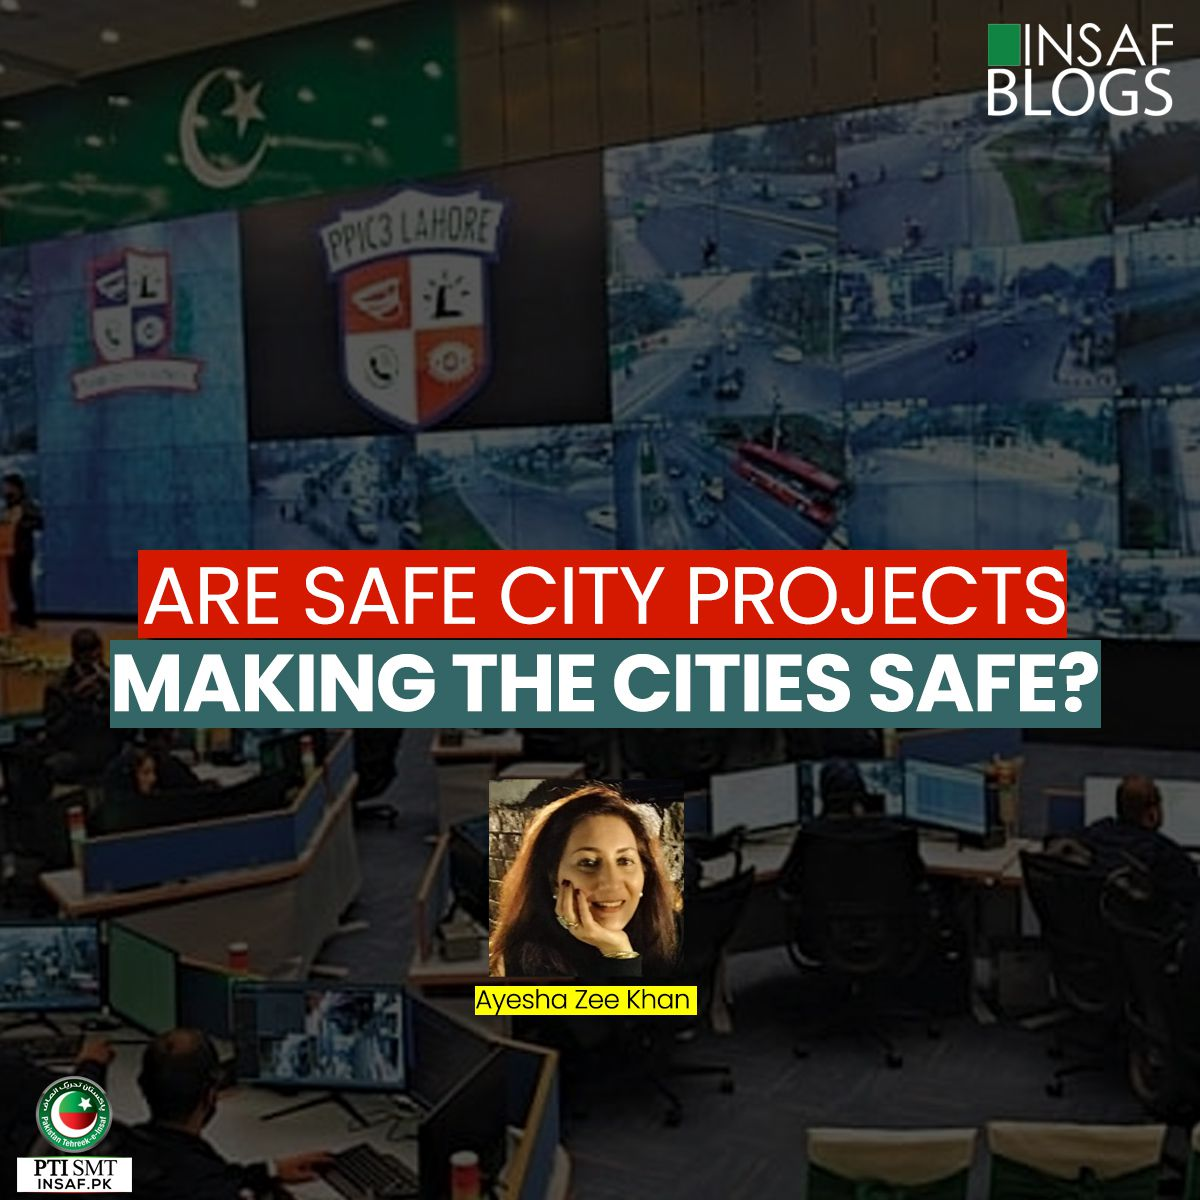 safe-city-insaf-blog